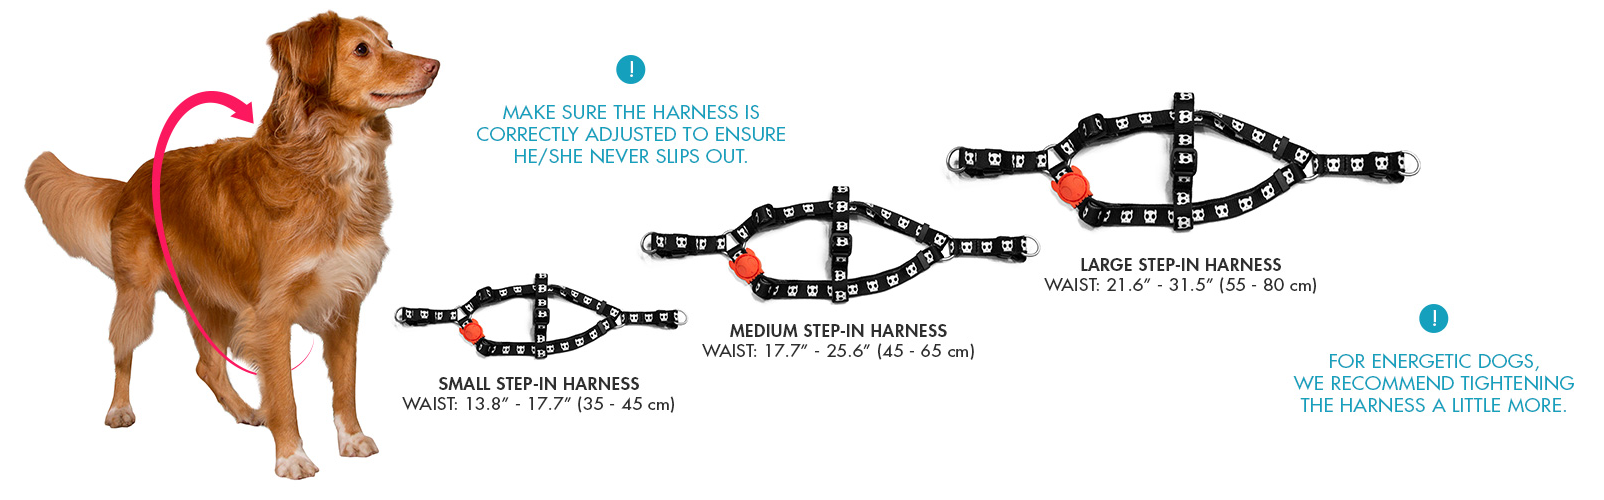 Zee Dog Step-in Harness Size Guide